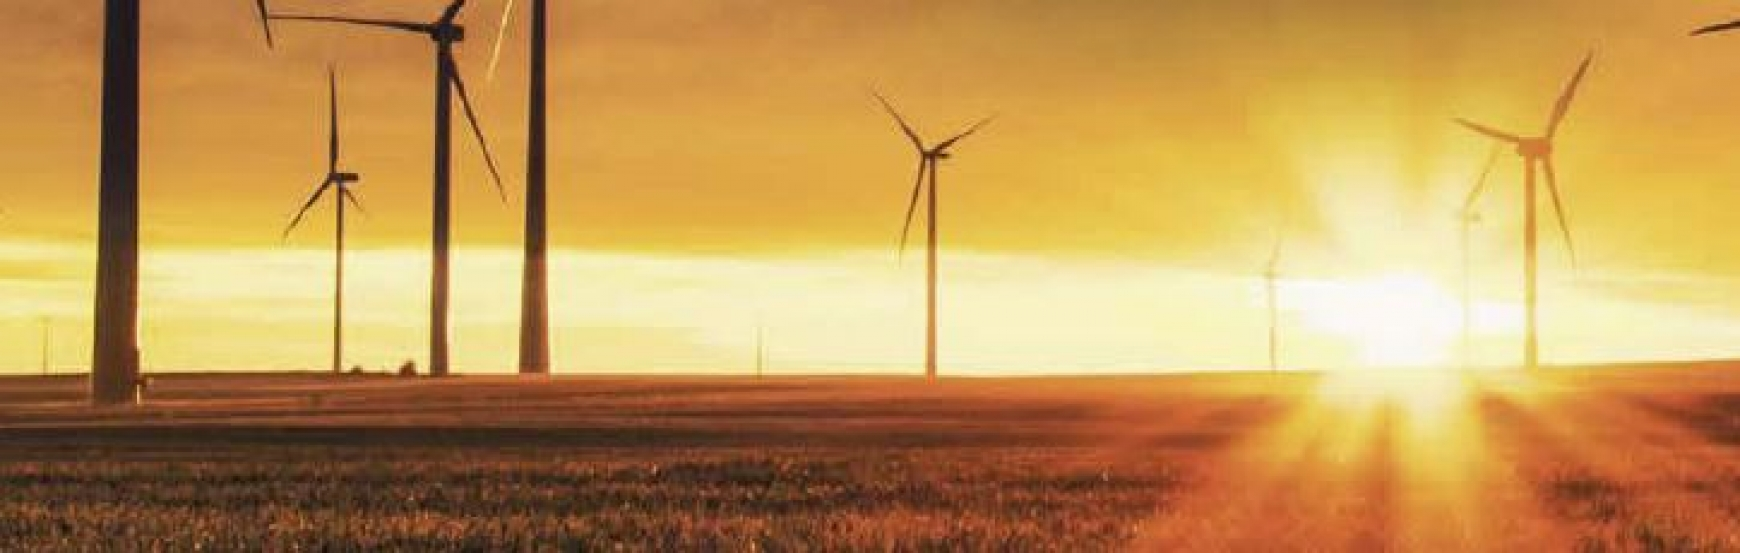 A wind farm in a field with a sunset behind